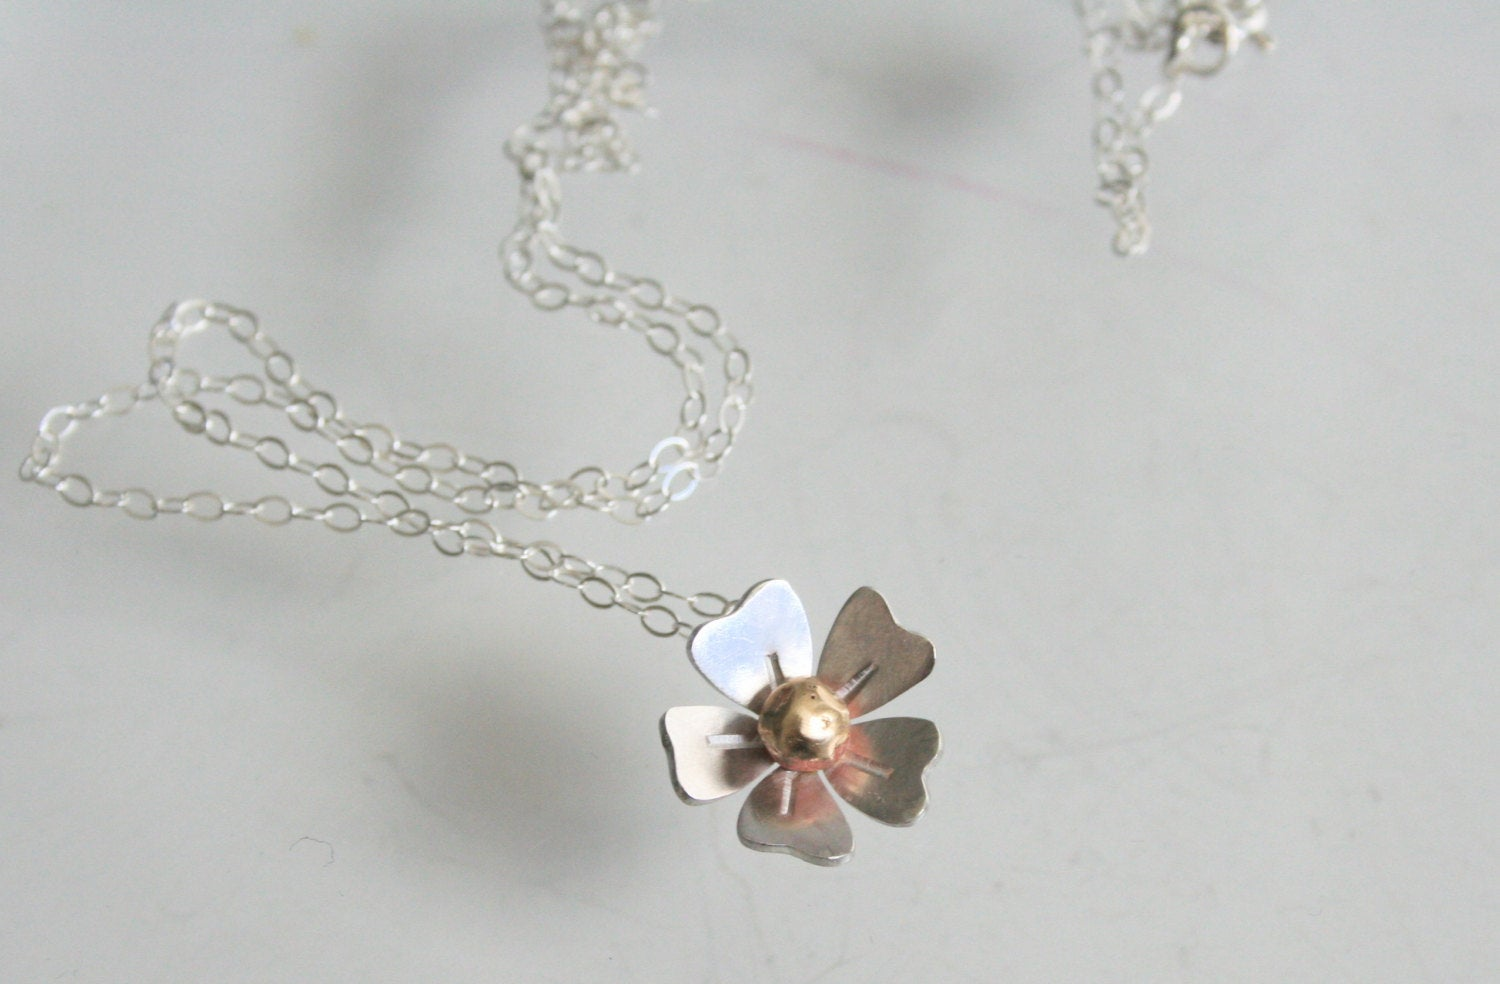 Silver and Brass Daisy Necklace, Flower Jewelry, Handmade Necklace, Metalwork, Silver and Gold Color, Gift For her